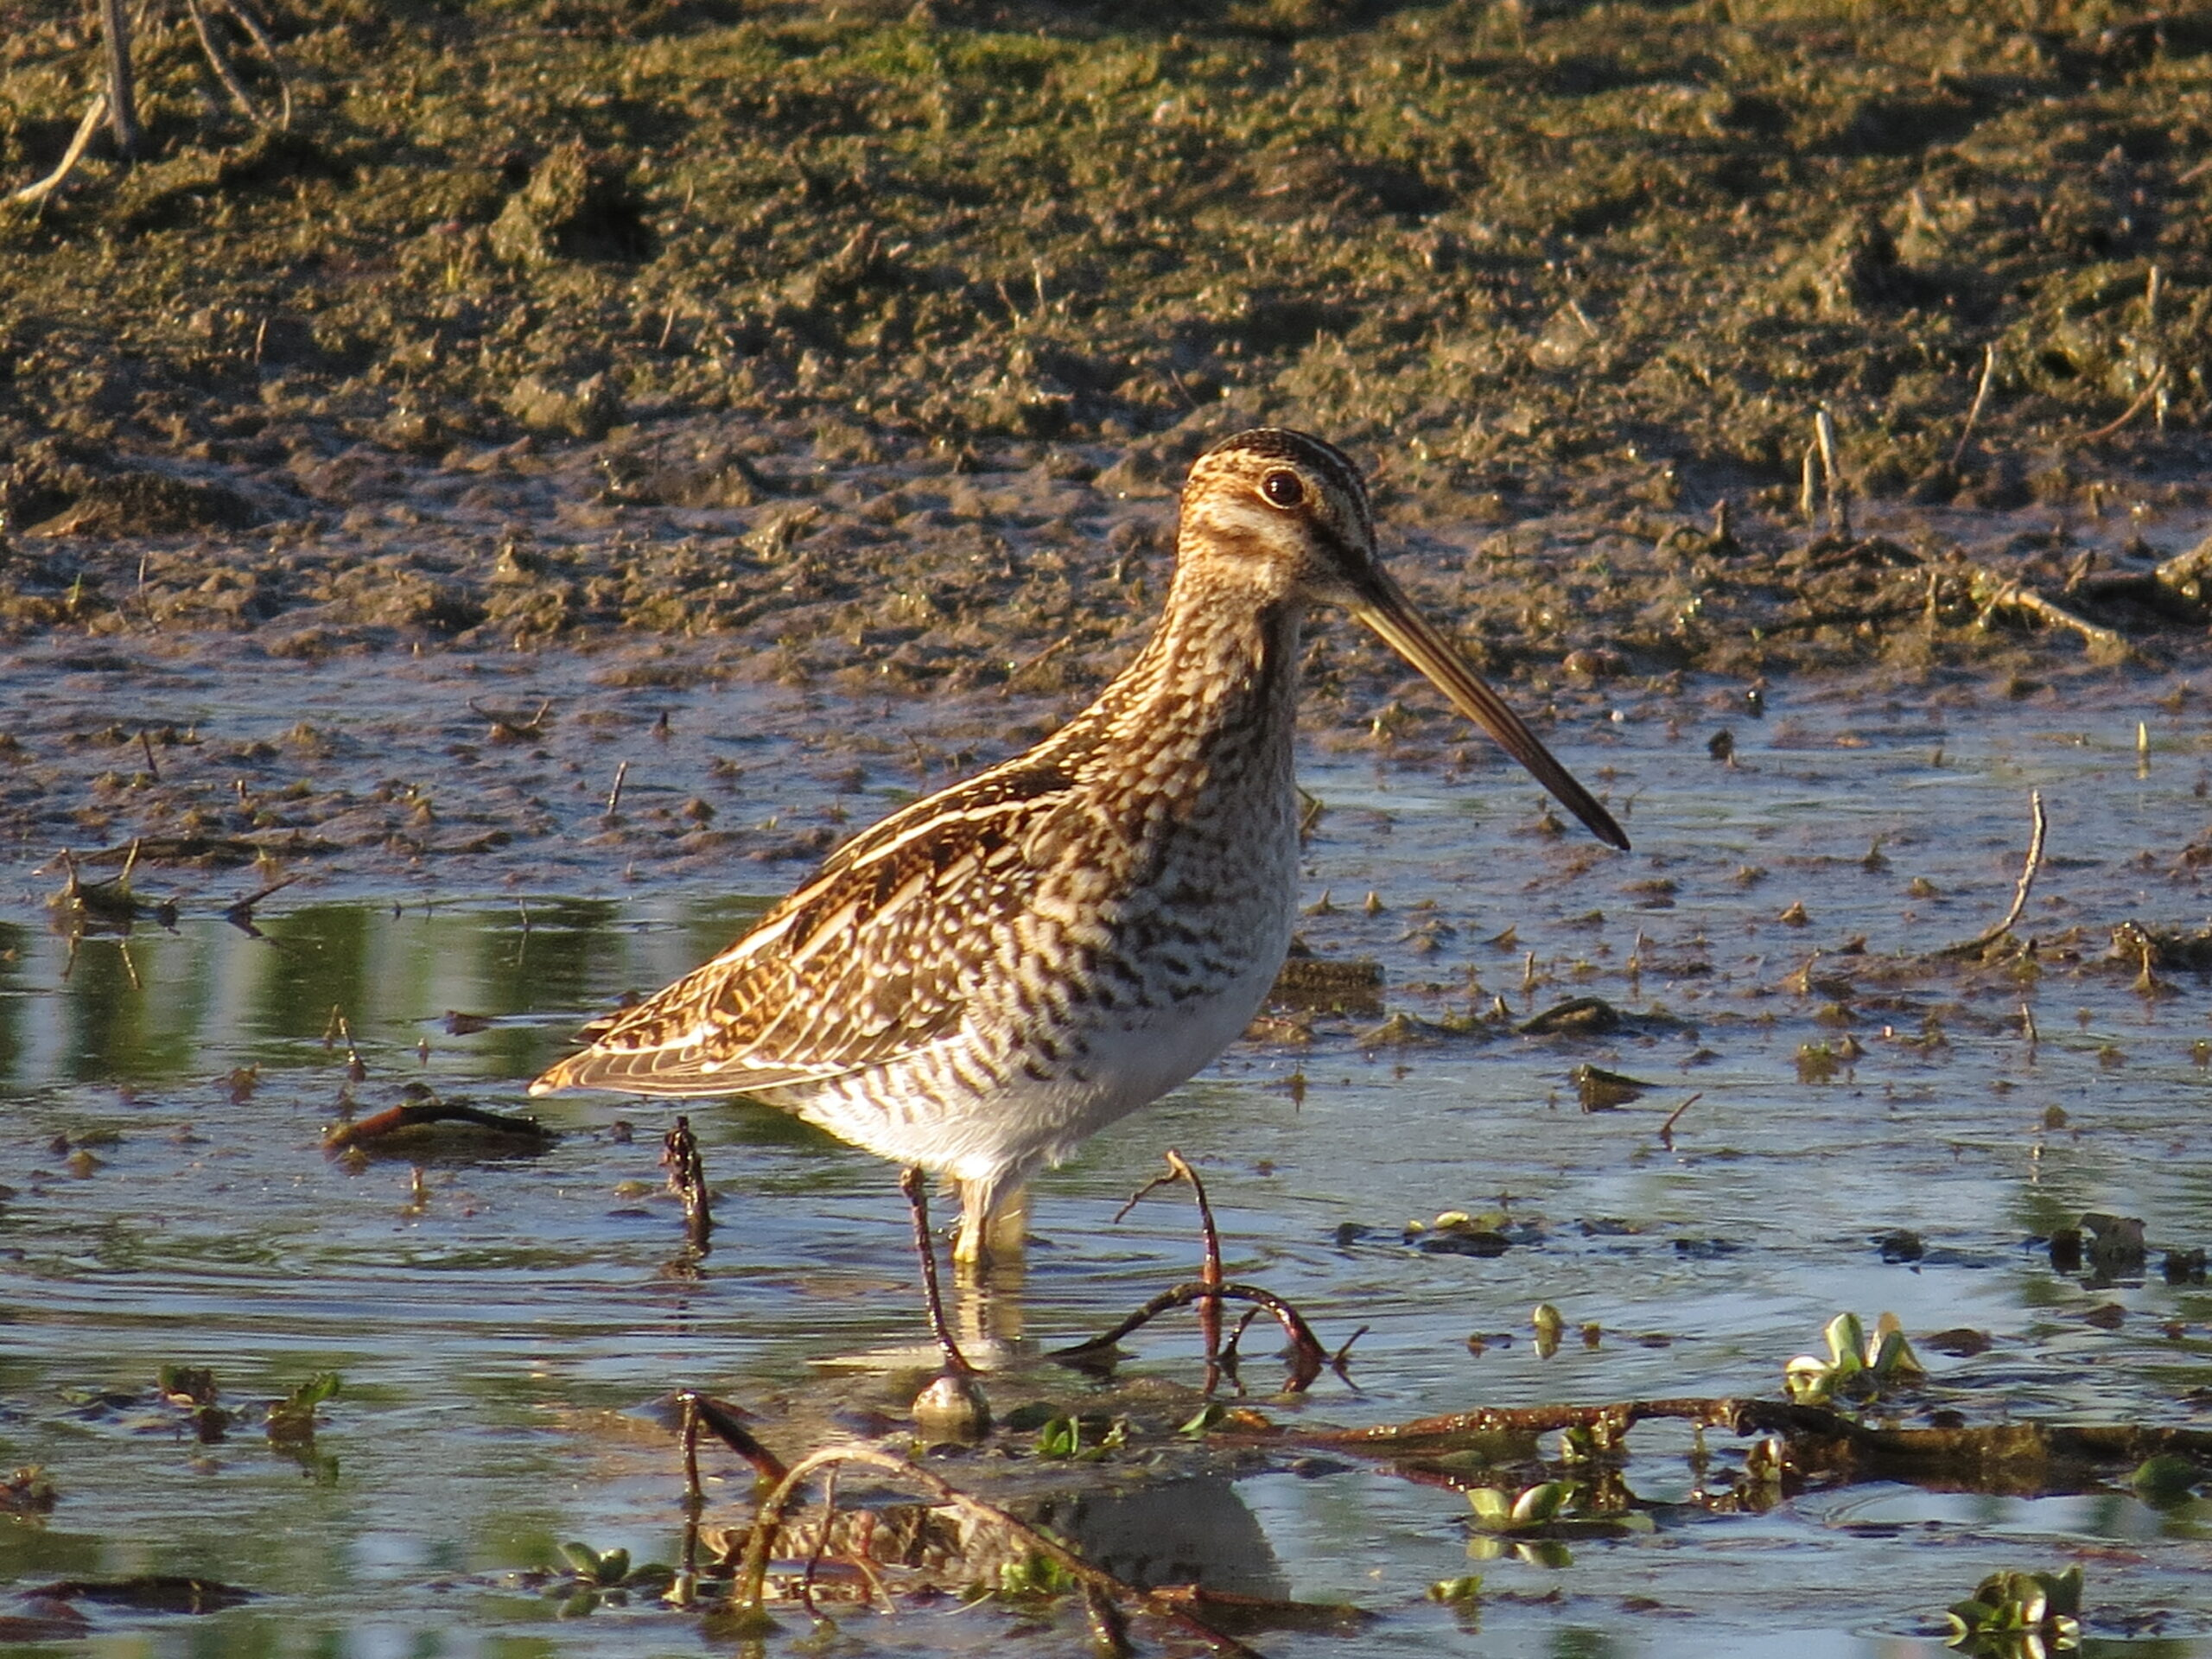 Wilson's Snipe at Estero Llano by Lora Reynolds